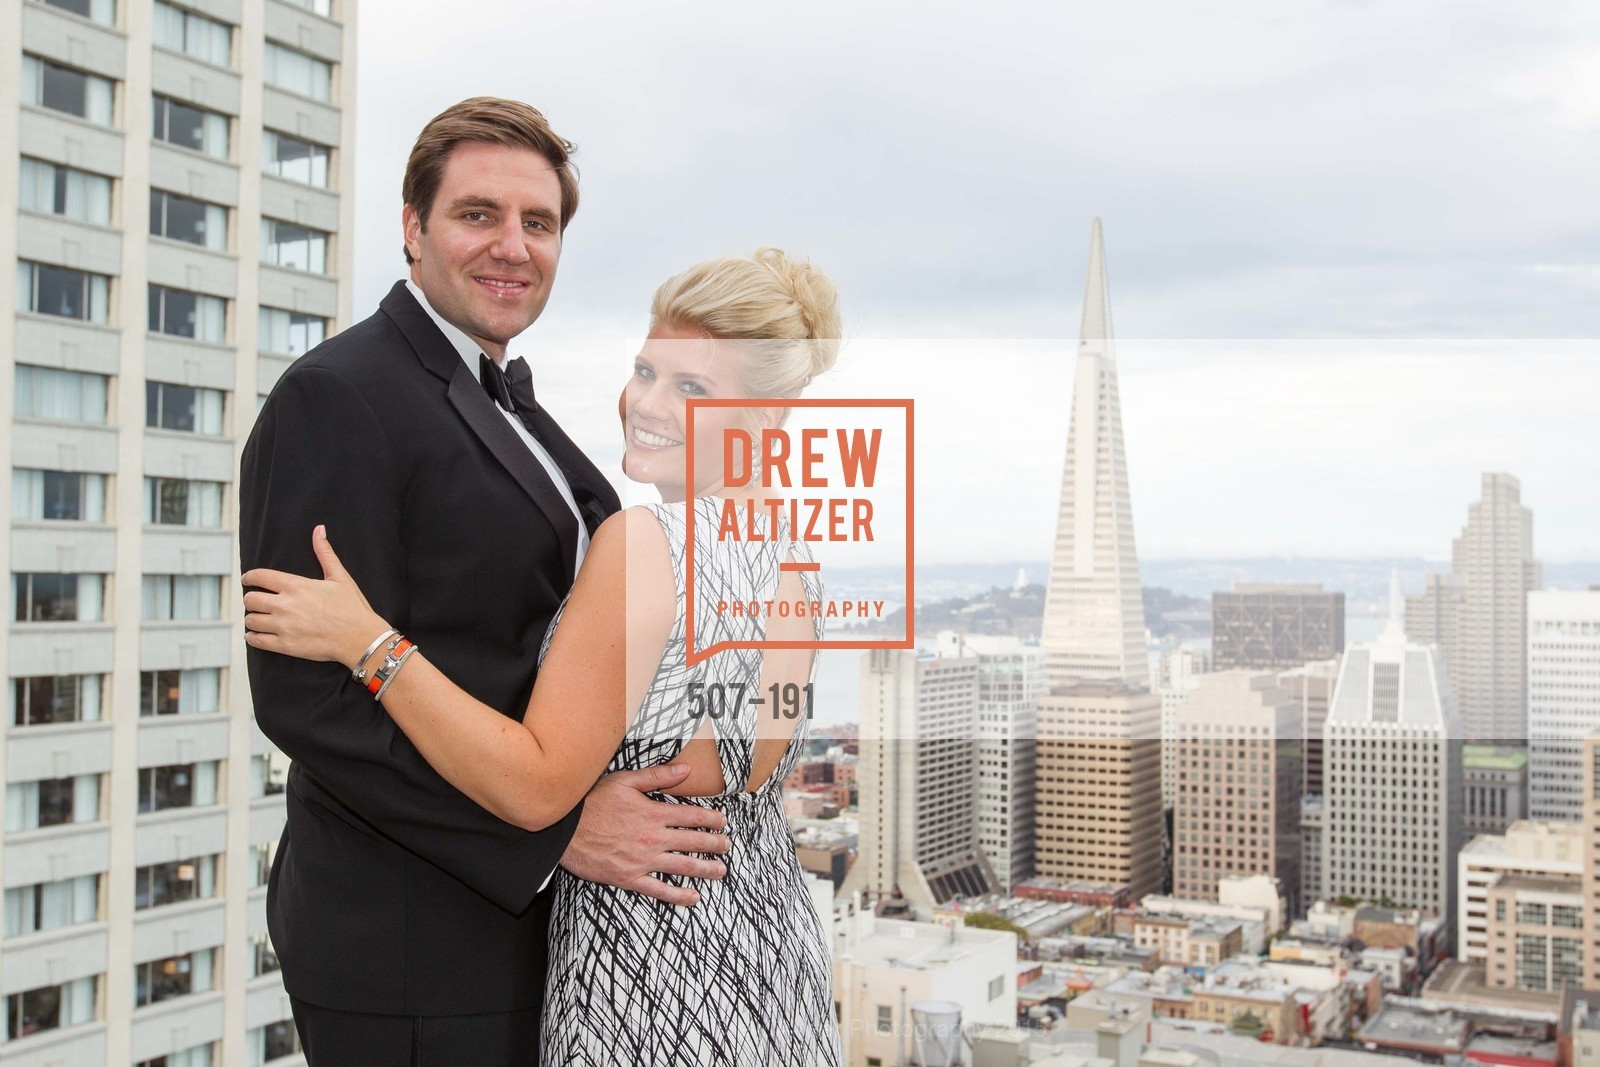 Laura Davis, Spinsters of San Francisco Annual Ball 2015, Penthouse at the Fairmont San Francisco (950 Mason Street). 950 Mason Street, June 28th, 2015,Drew Altizer, Drew Altizer Photography, full-service agency, private events, San Francisco photographer, photographer california